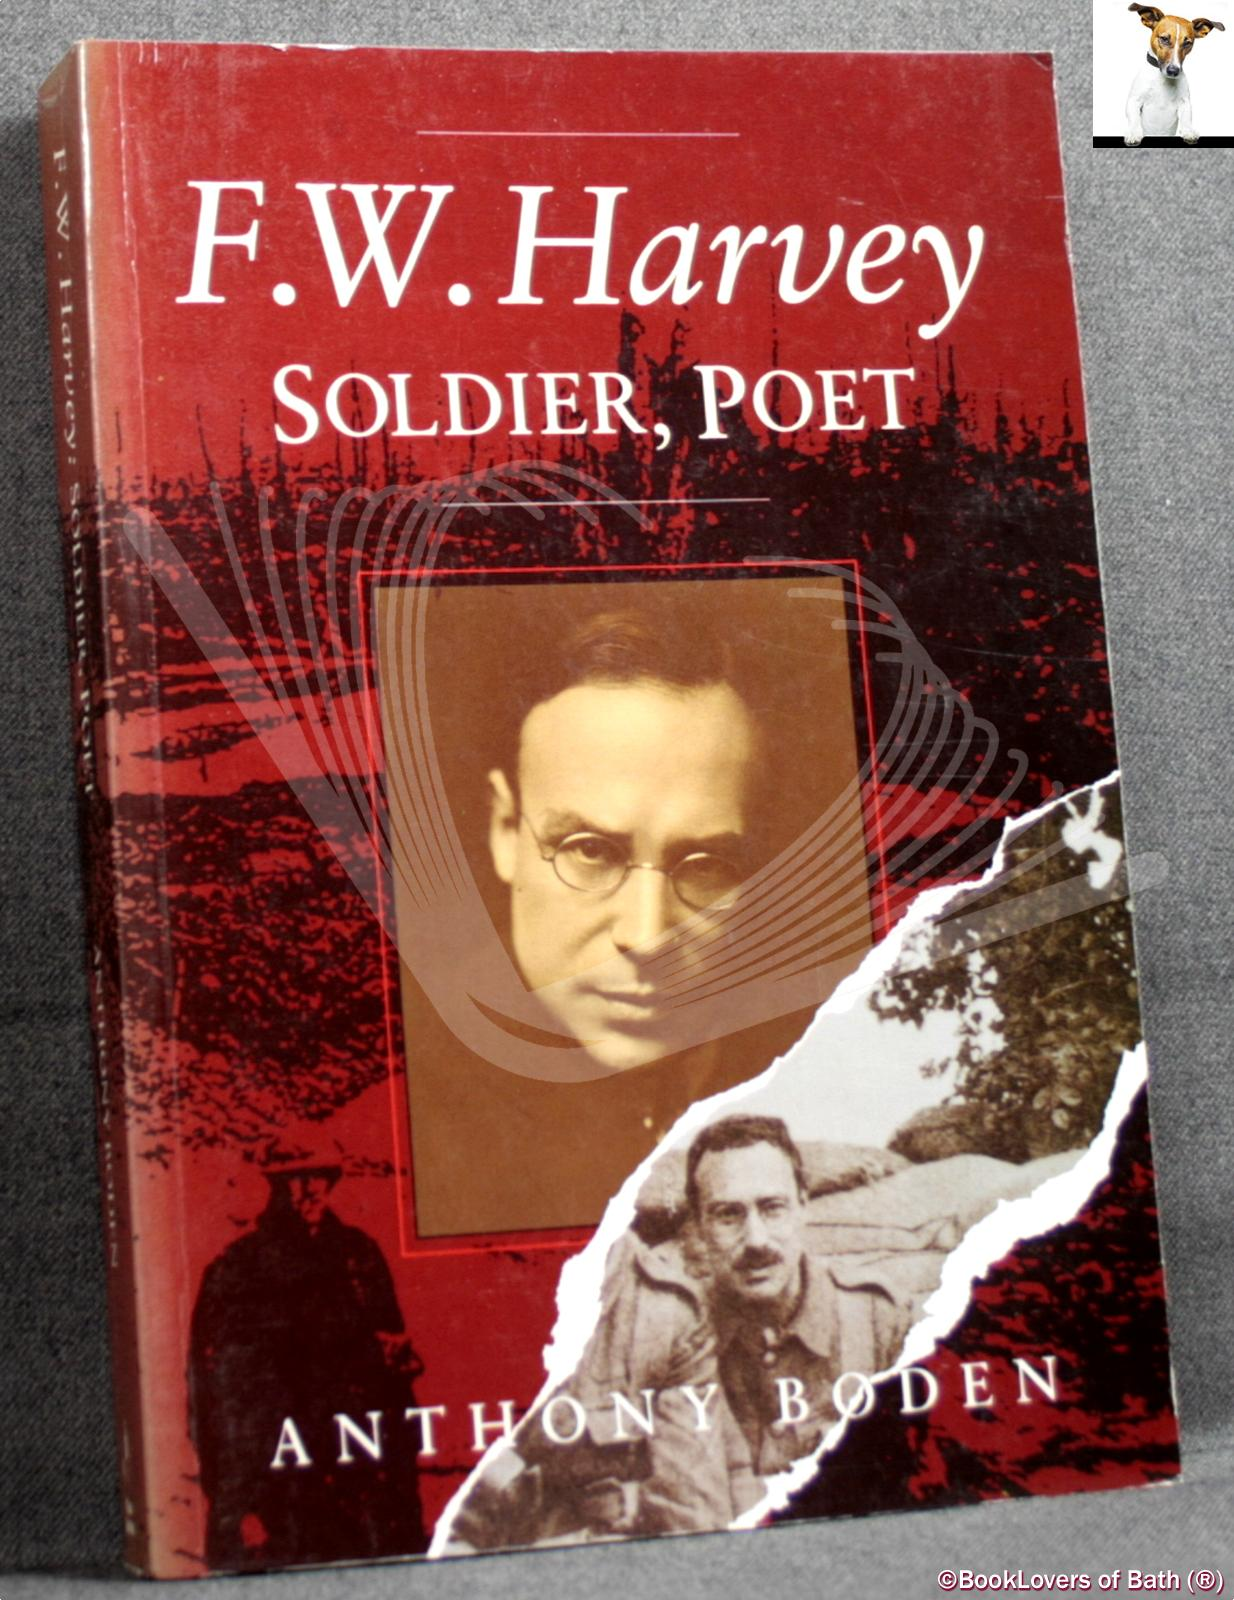 F. W. Harvey: Soldier, Poet - Anthony Boden